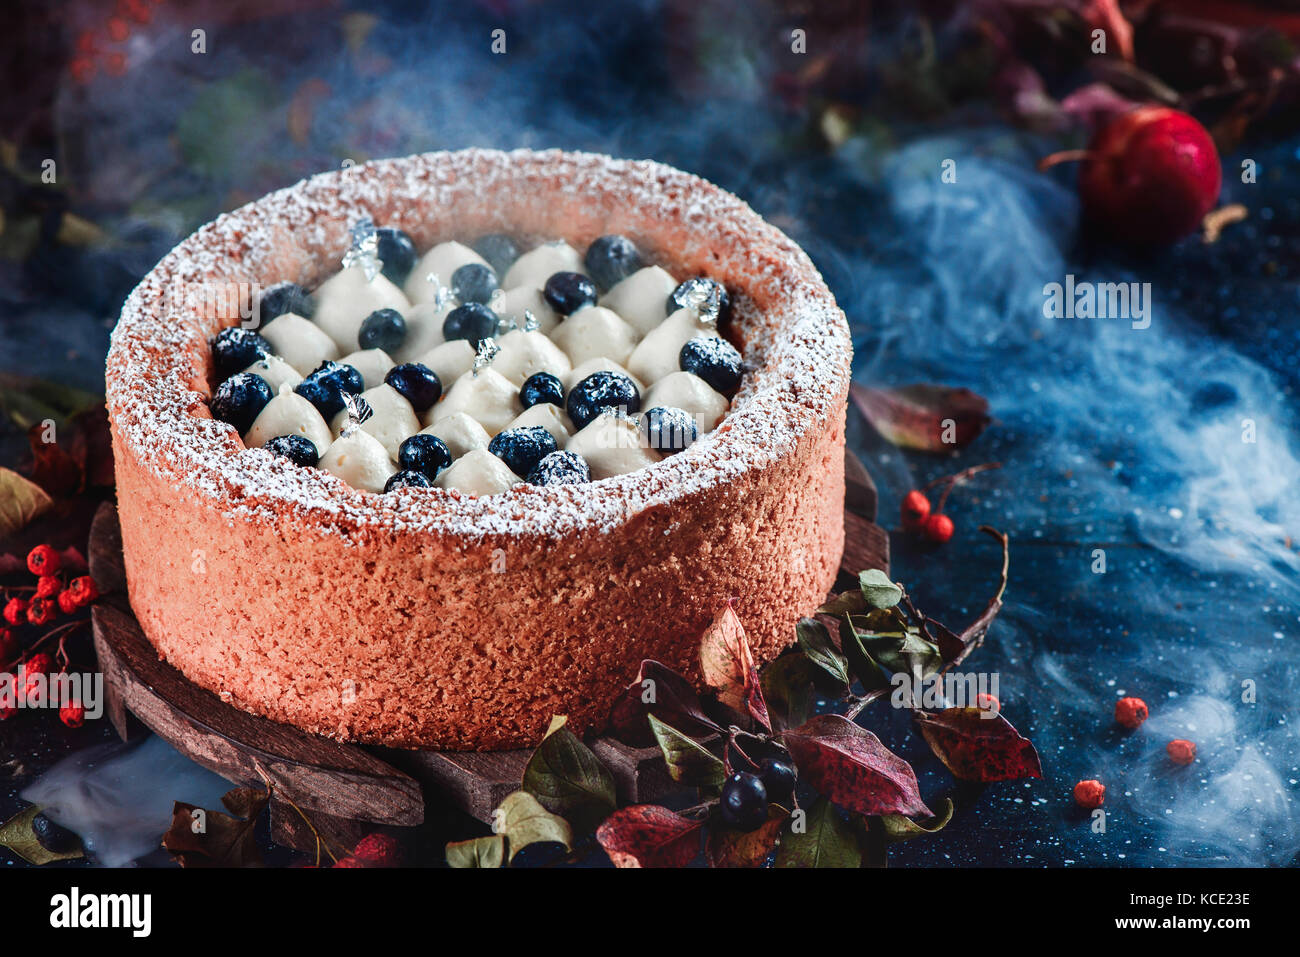 Whipped cream and blueberry cake with a shortbread crust on a dark background. Dark food photography with smoke. - Stock Image